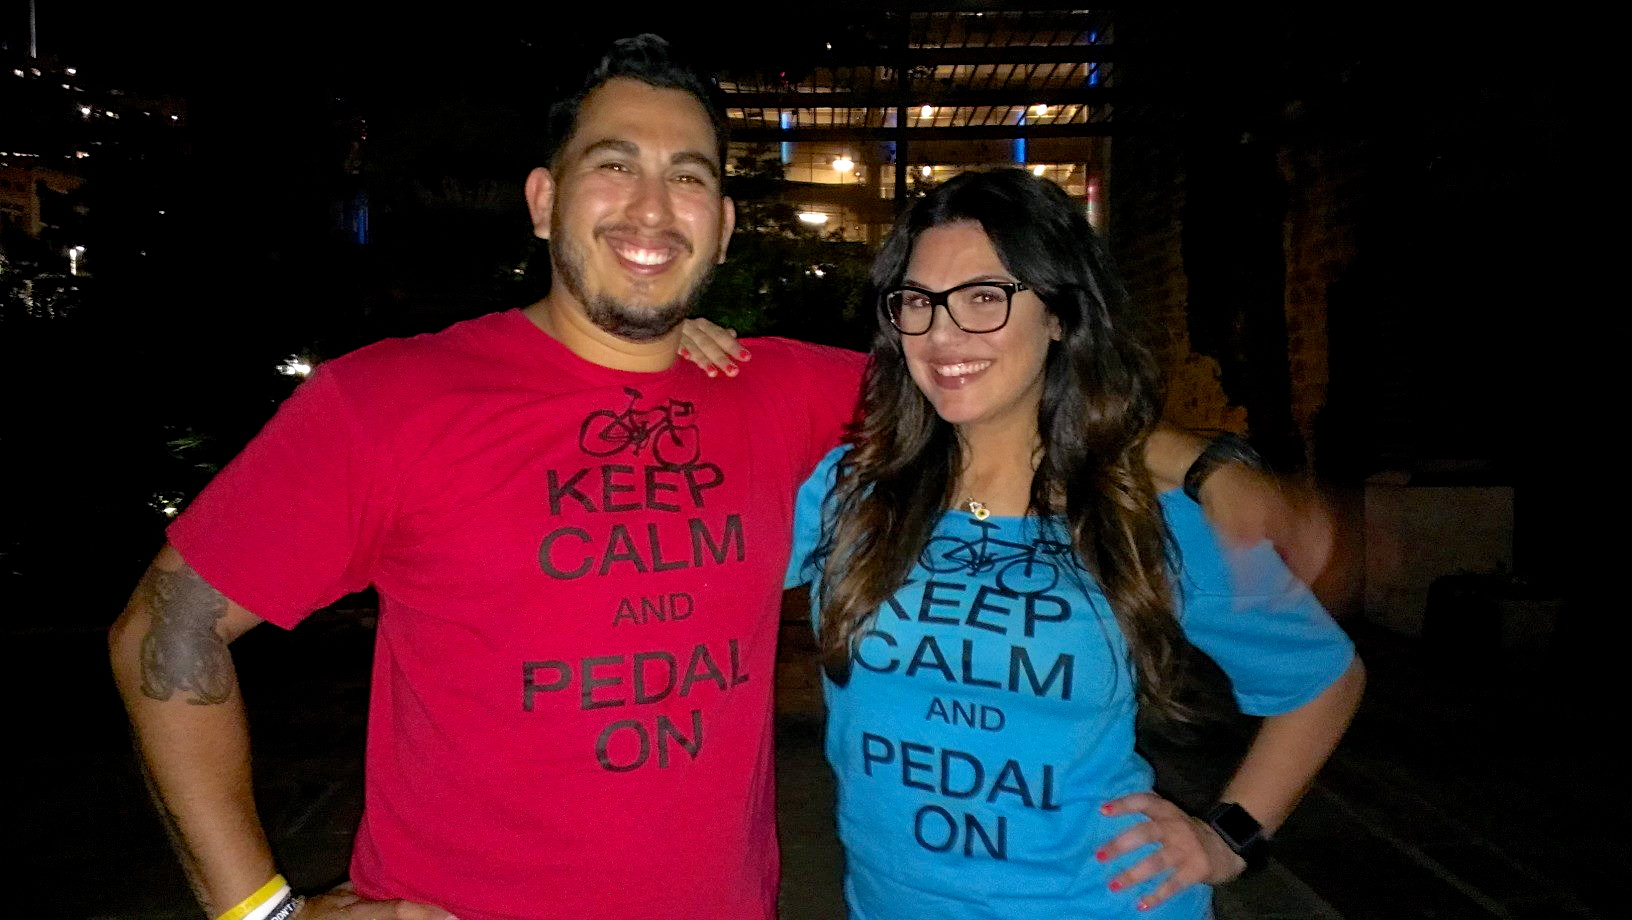 Edward Garcia, founder of SATX Pedal Power, and Ashley Quinn, Main Plaza Conservancy programs manager, teamed up to host Cycle-In Cinema every Thursday night in Main Plaza. Photo courtesy Main Plaza conservancy / Ashley Quinn.